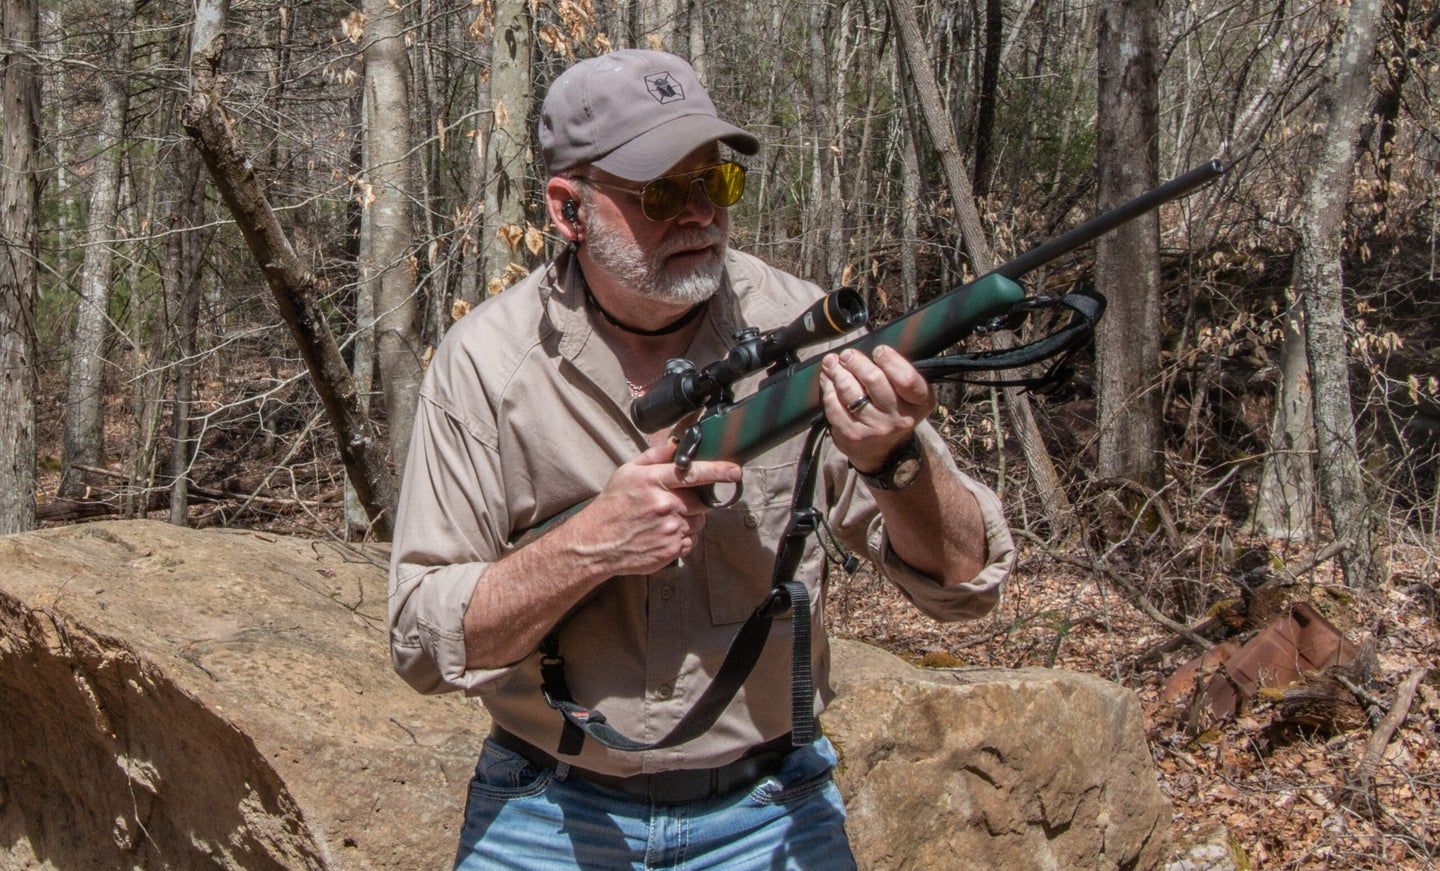 deer hunting rifle at high ready for shooting drill